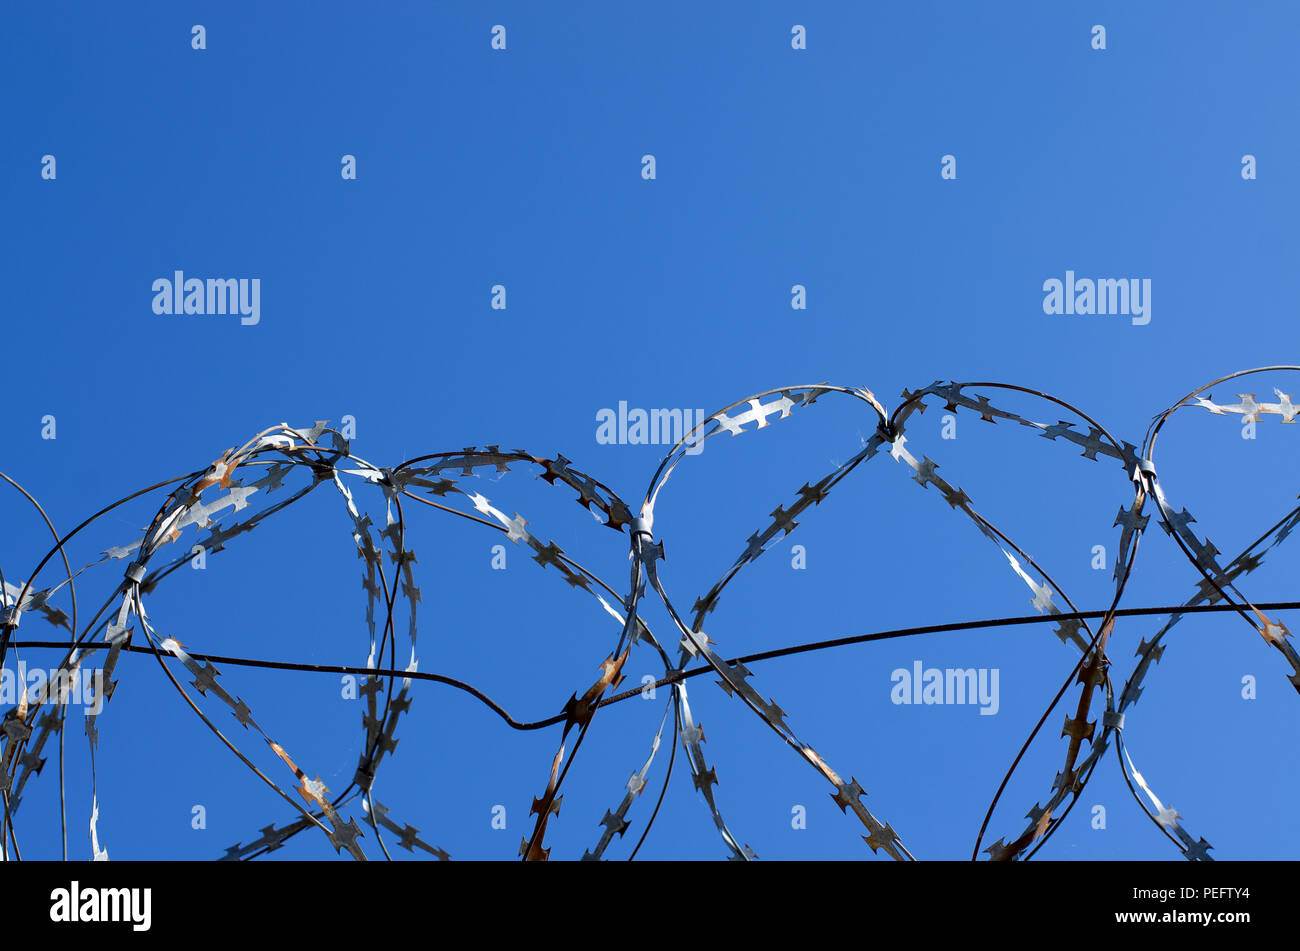 Coils of barbed wire with spikes over the concrete fence closeup - Stock Image